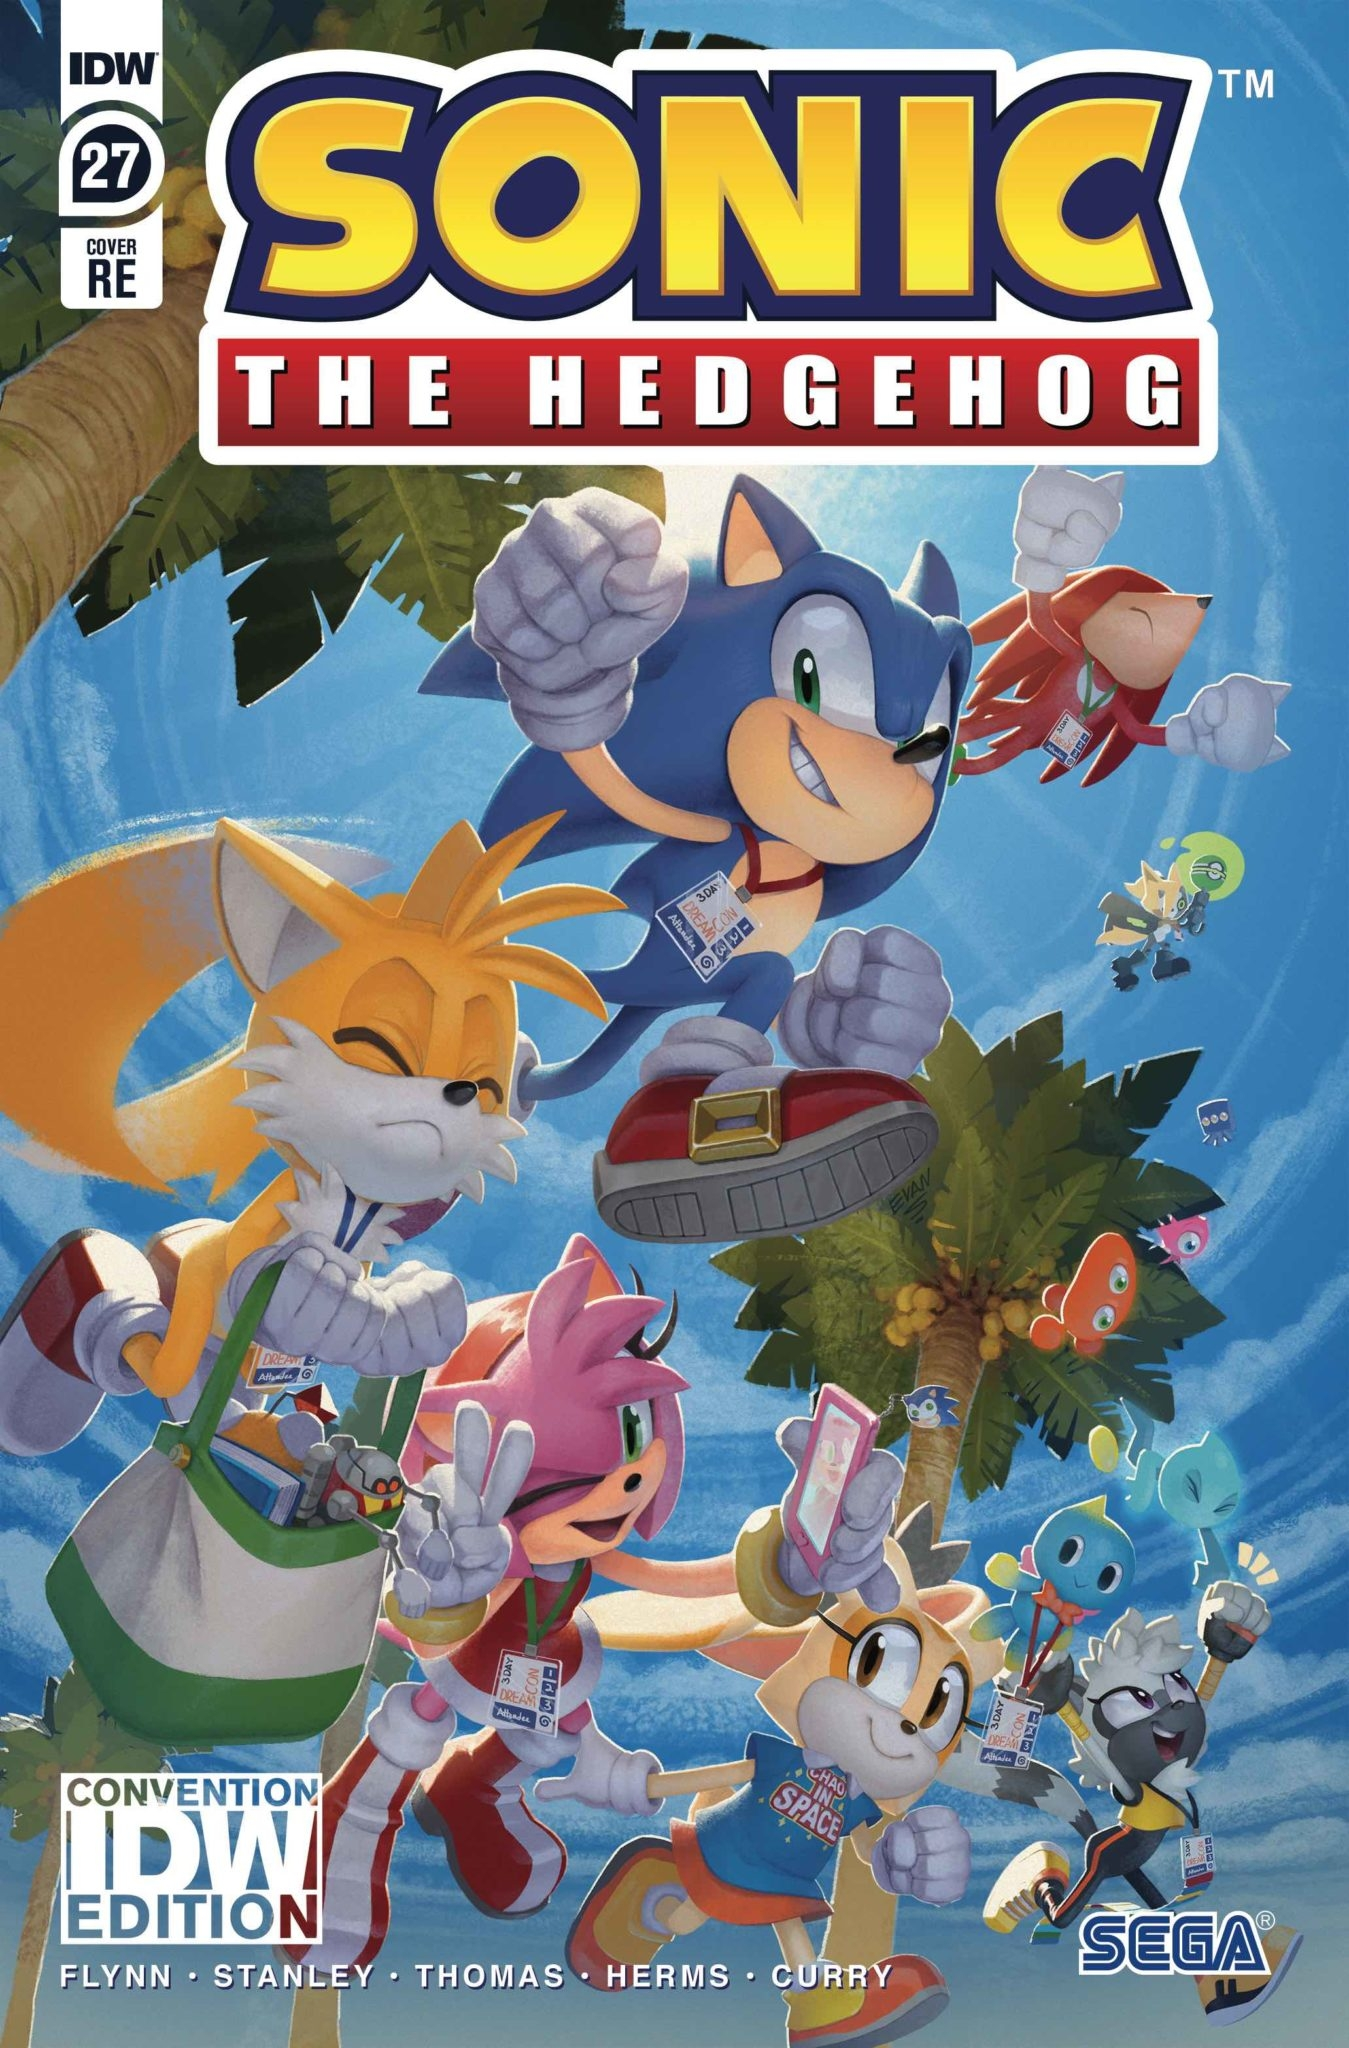 Sonic The Hedgehog #27 RE